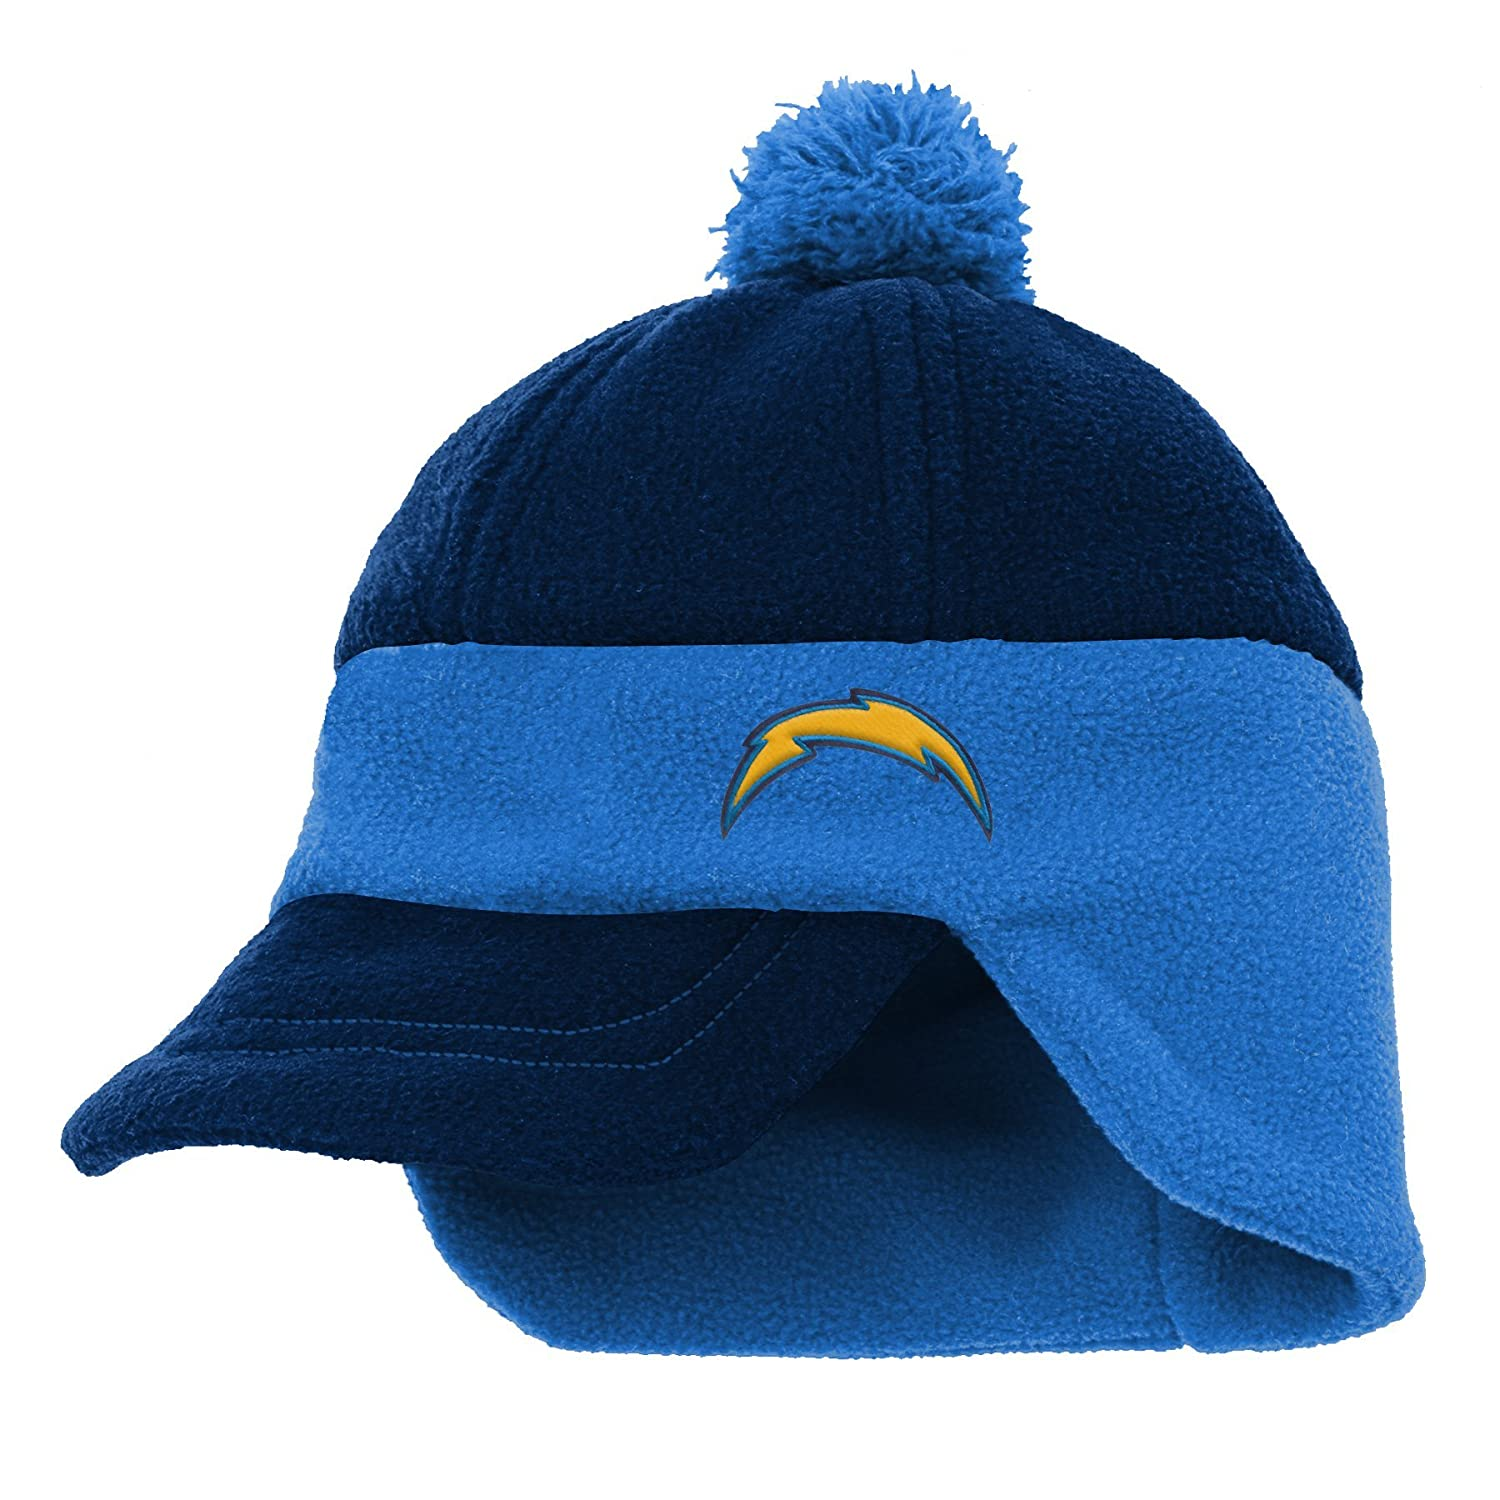 Team Color Youth One Size NFL LA Chargers 4-7 Outerstuff lil Cadet Fleece Hat